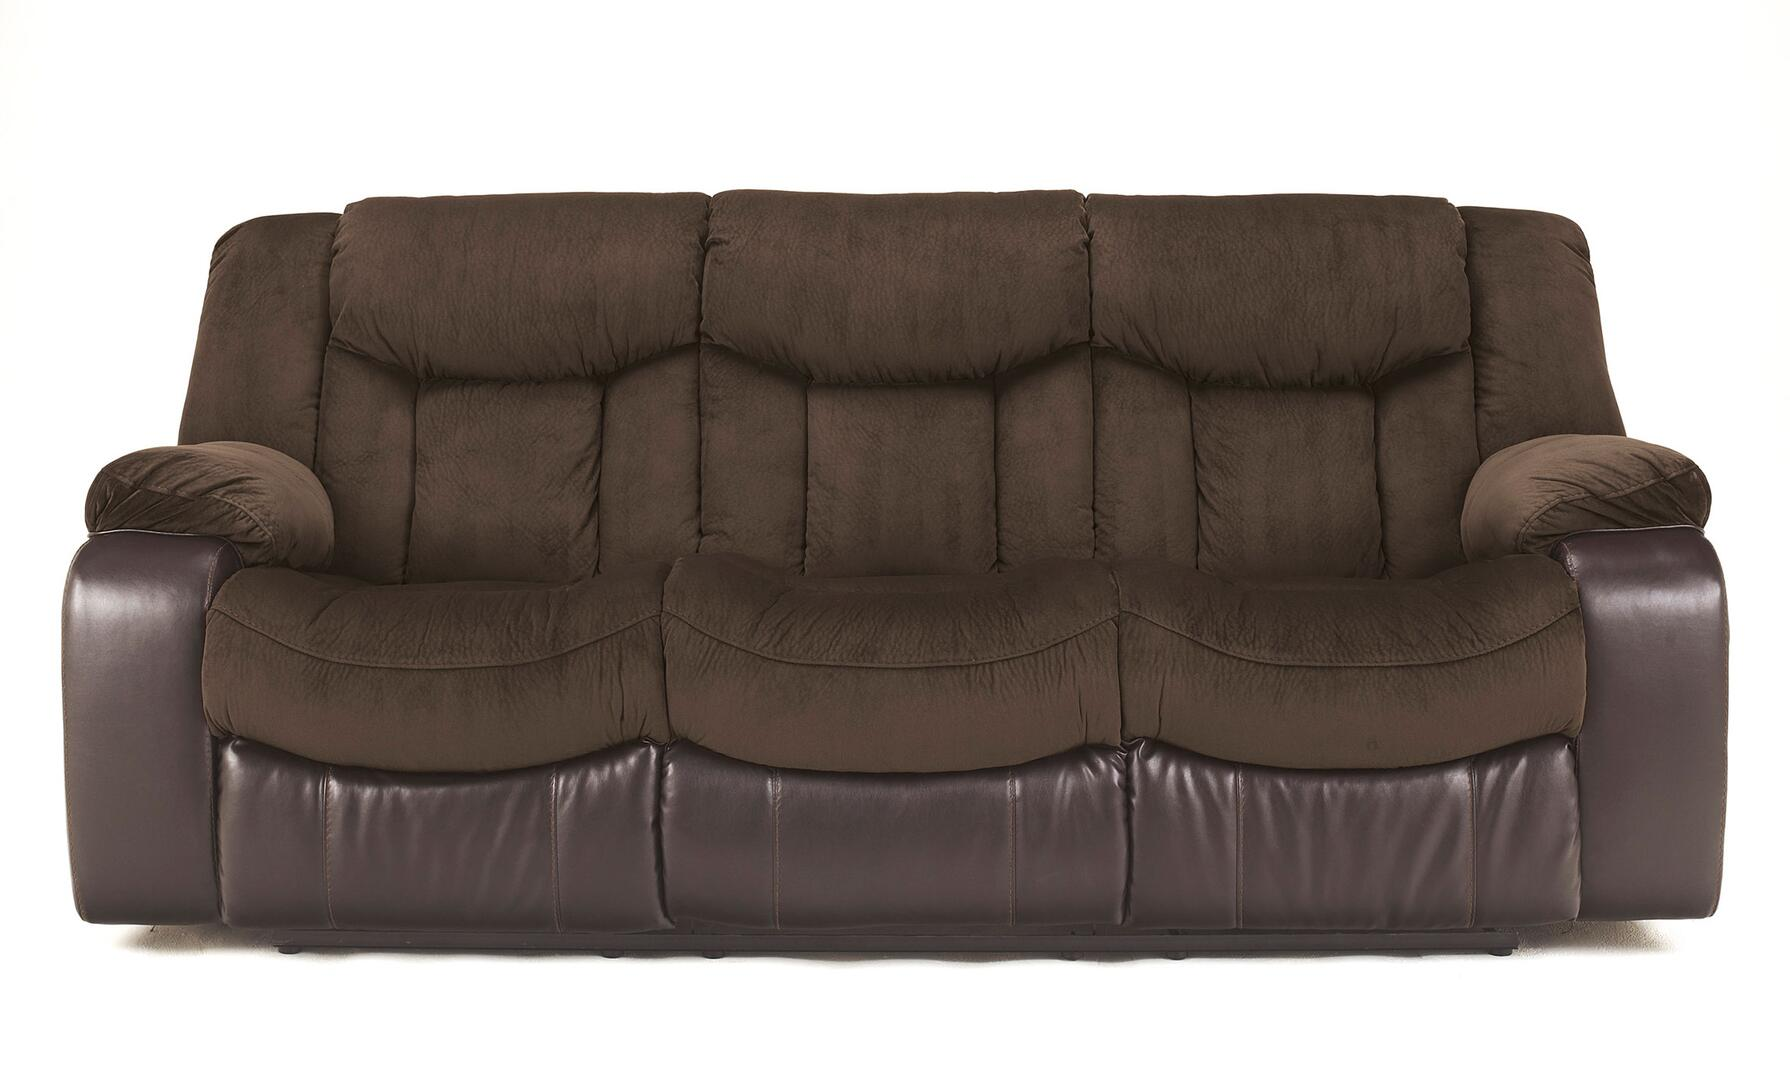 Signature design by ashley tafton 7920x88 reclining sofa for Ashley furniture reclining chaise lounge